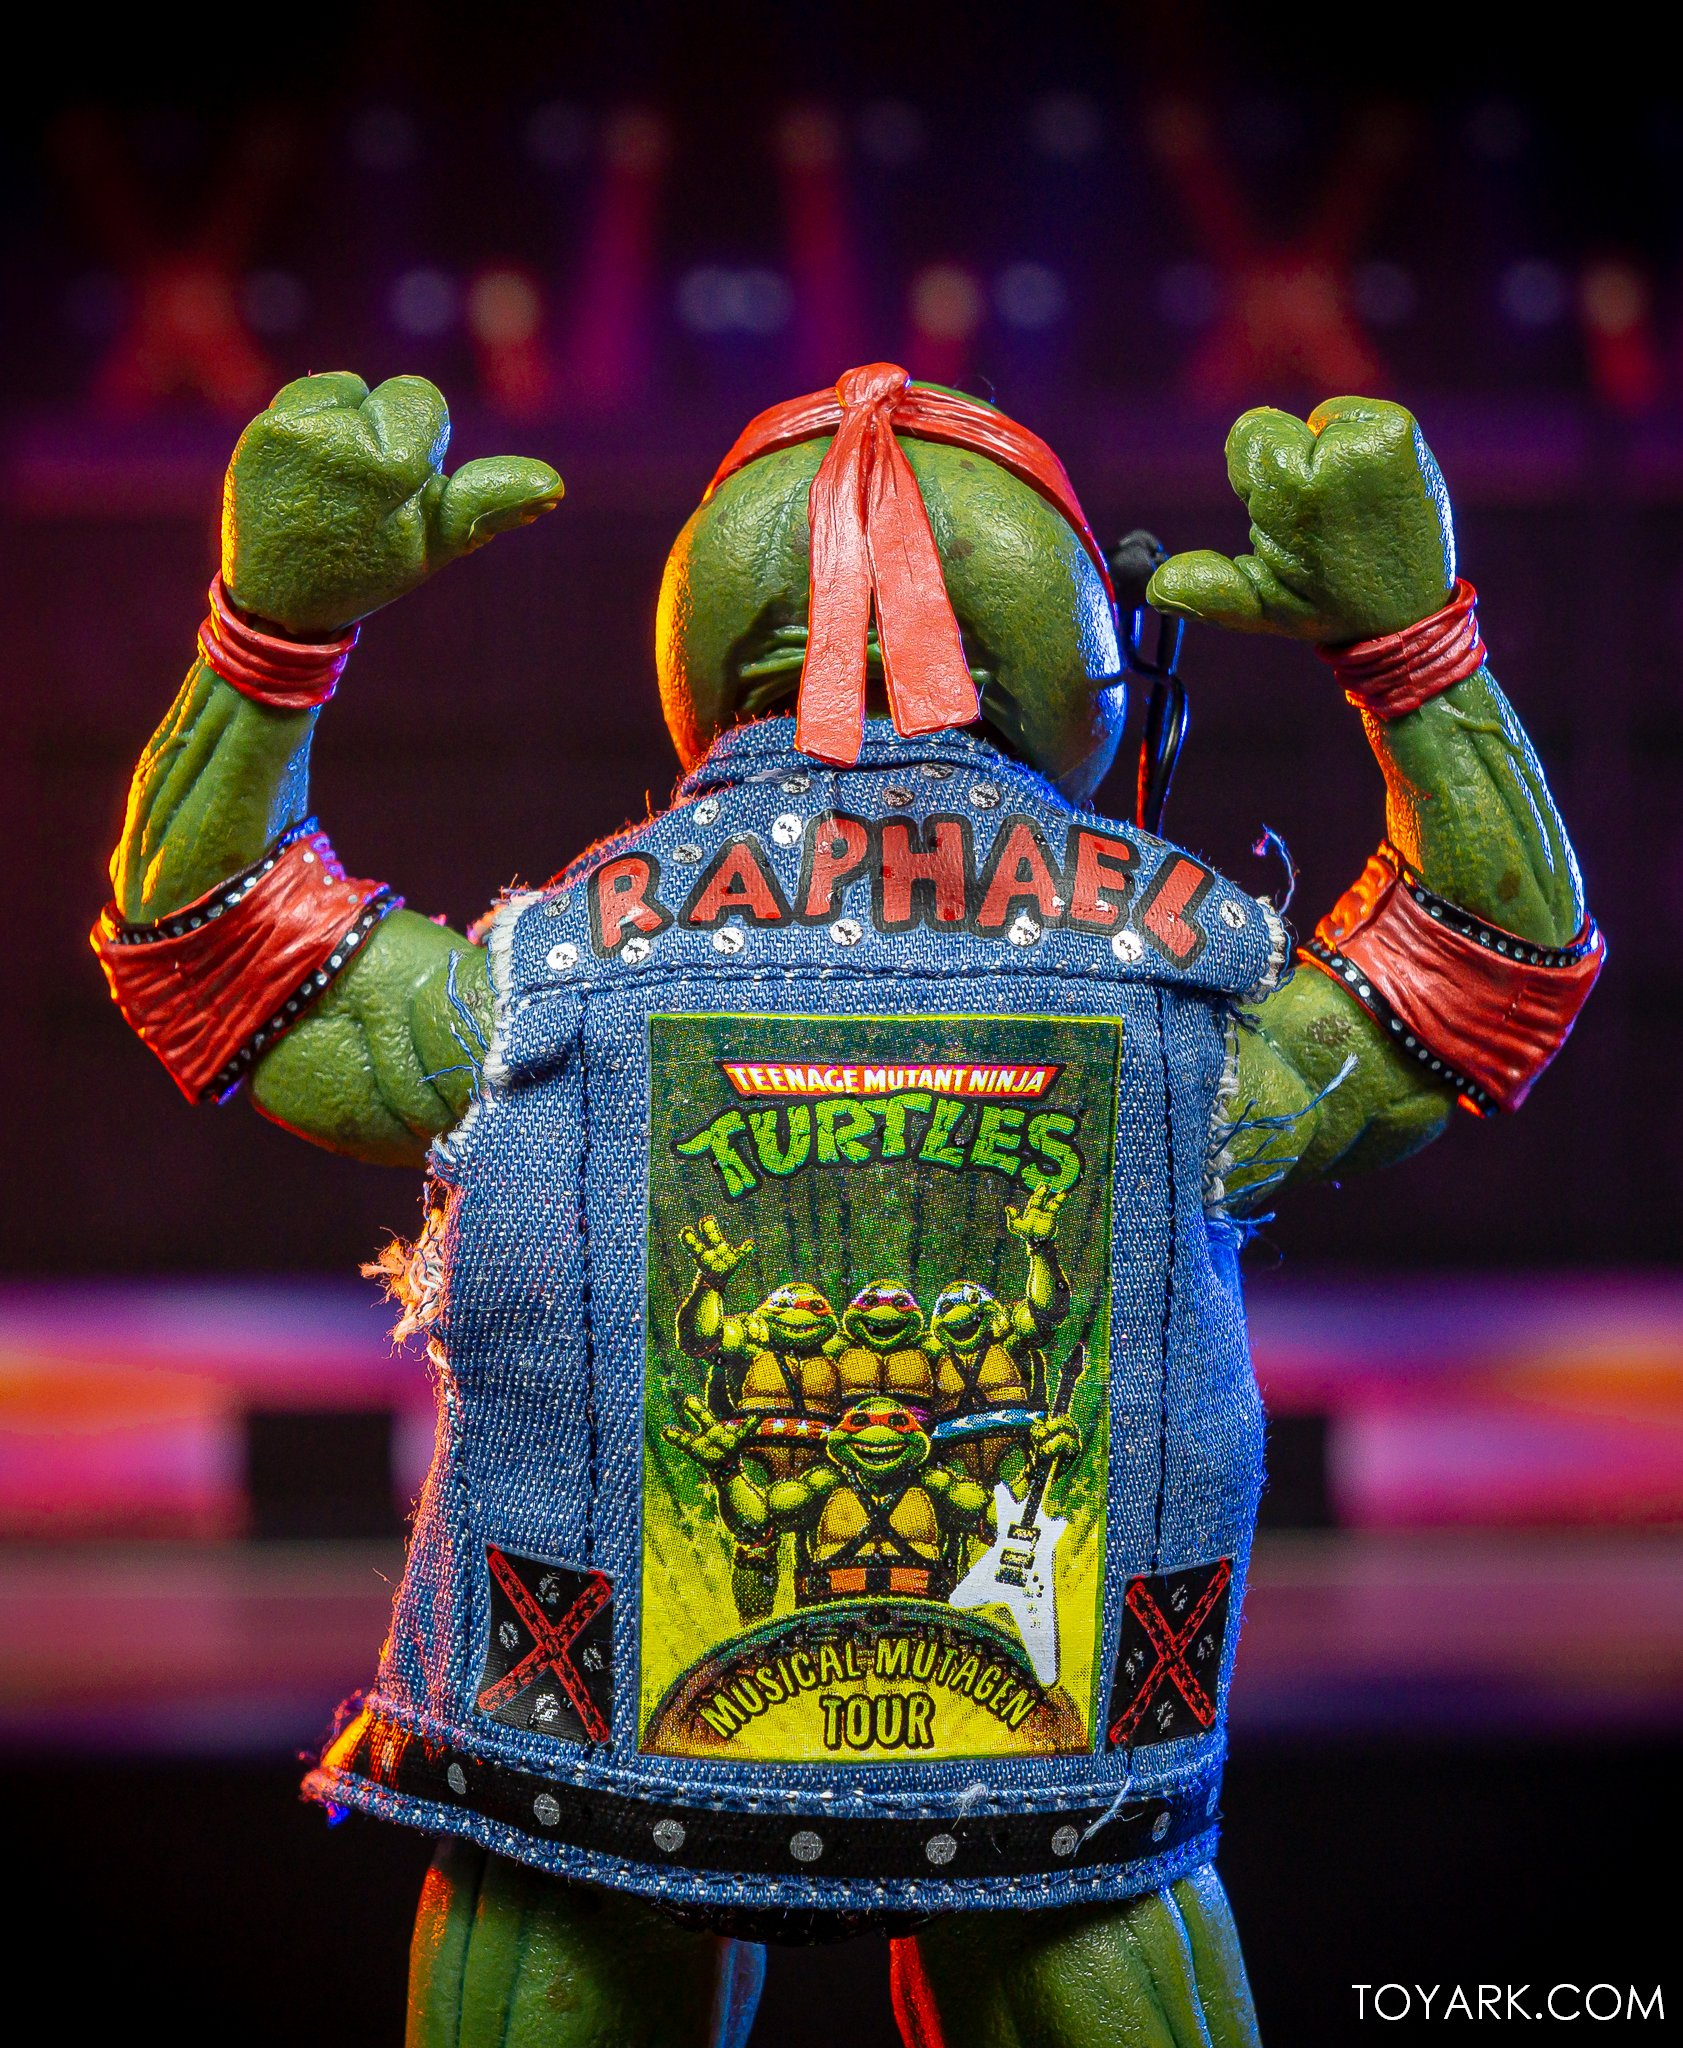 https://news.toyark.com/wp-content/uploads/sites/4/2020/07/SDCC-2020-TMNT-Musical-Mutagen-Tour-065.jpg